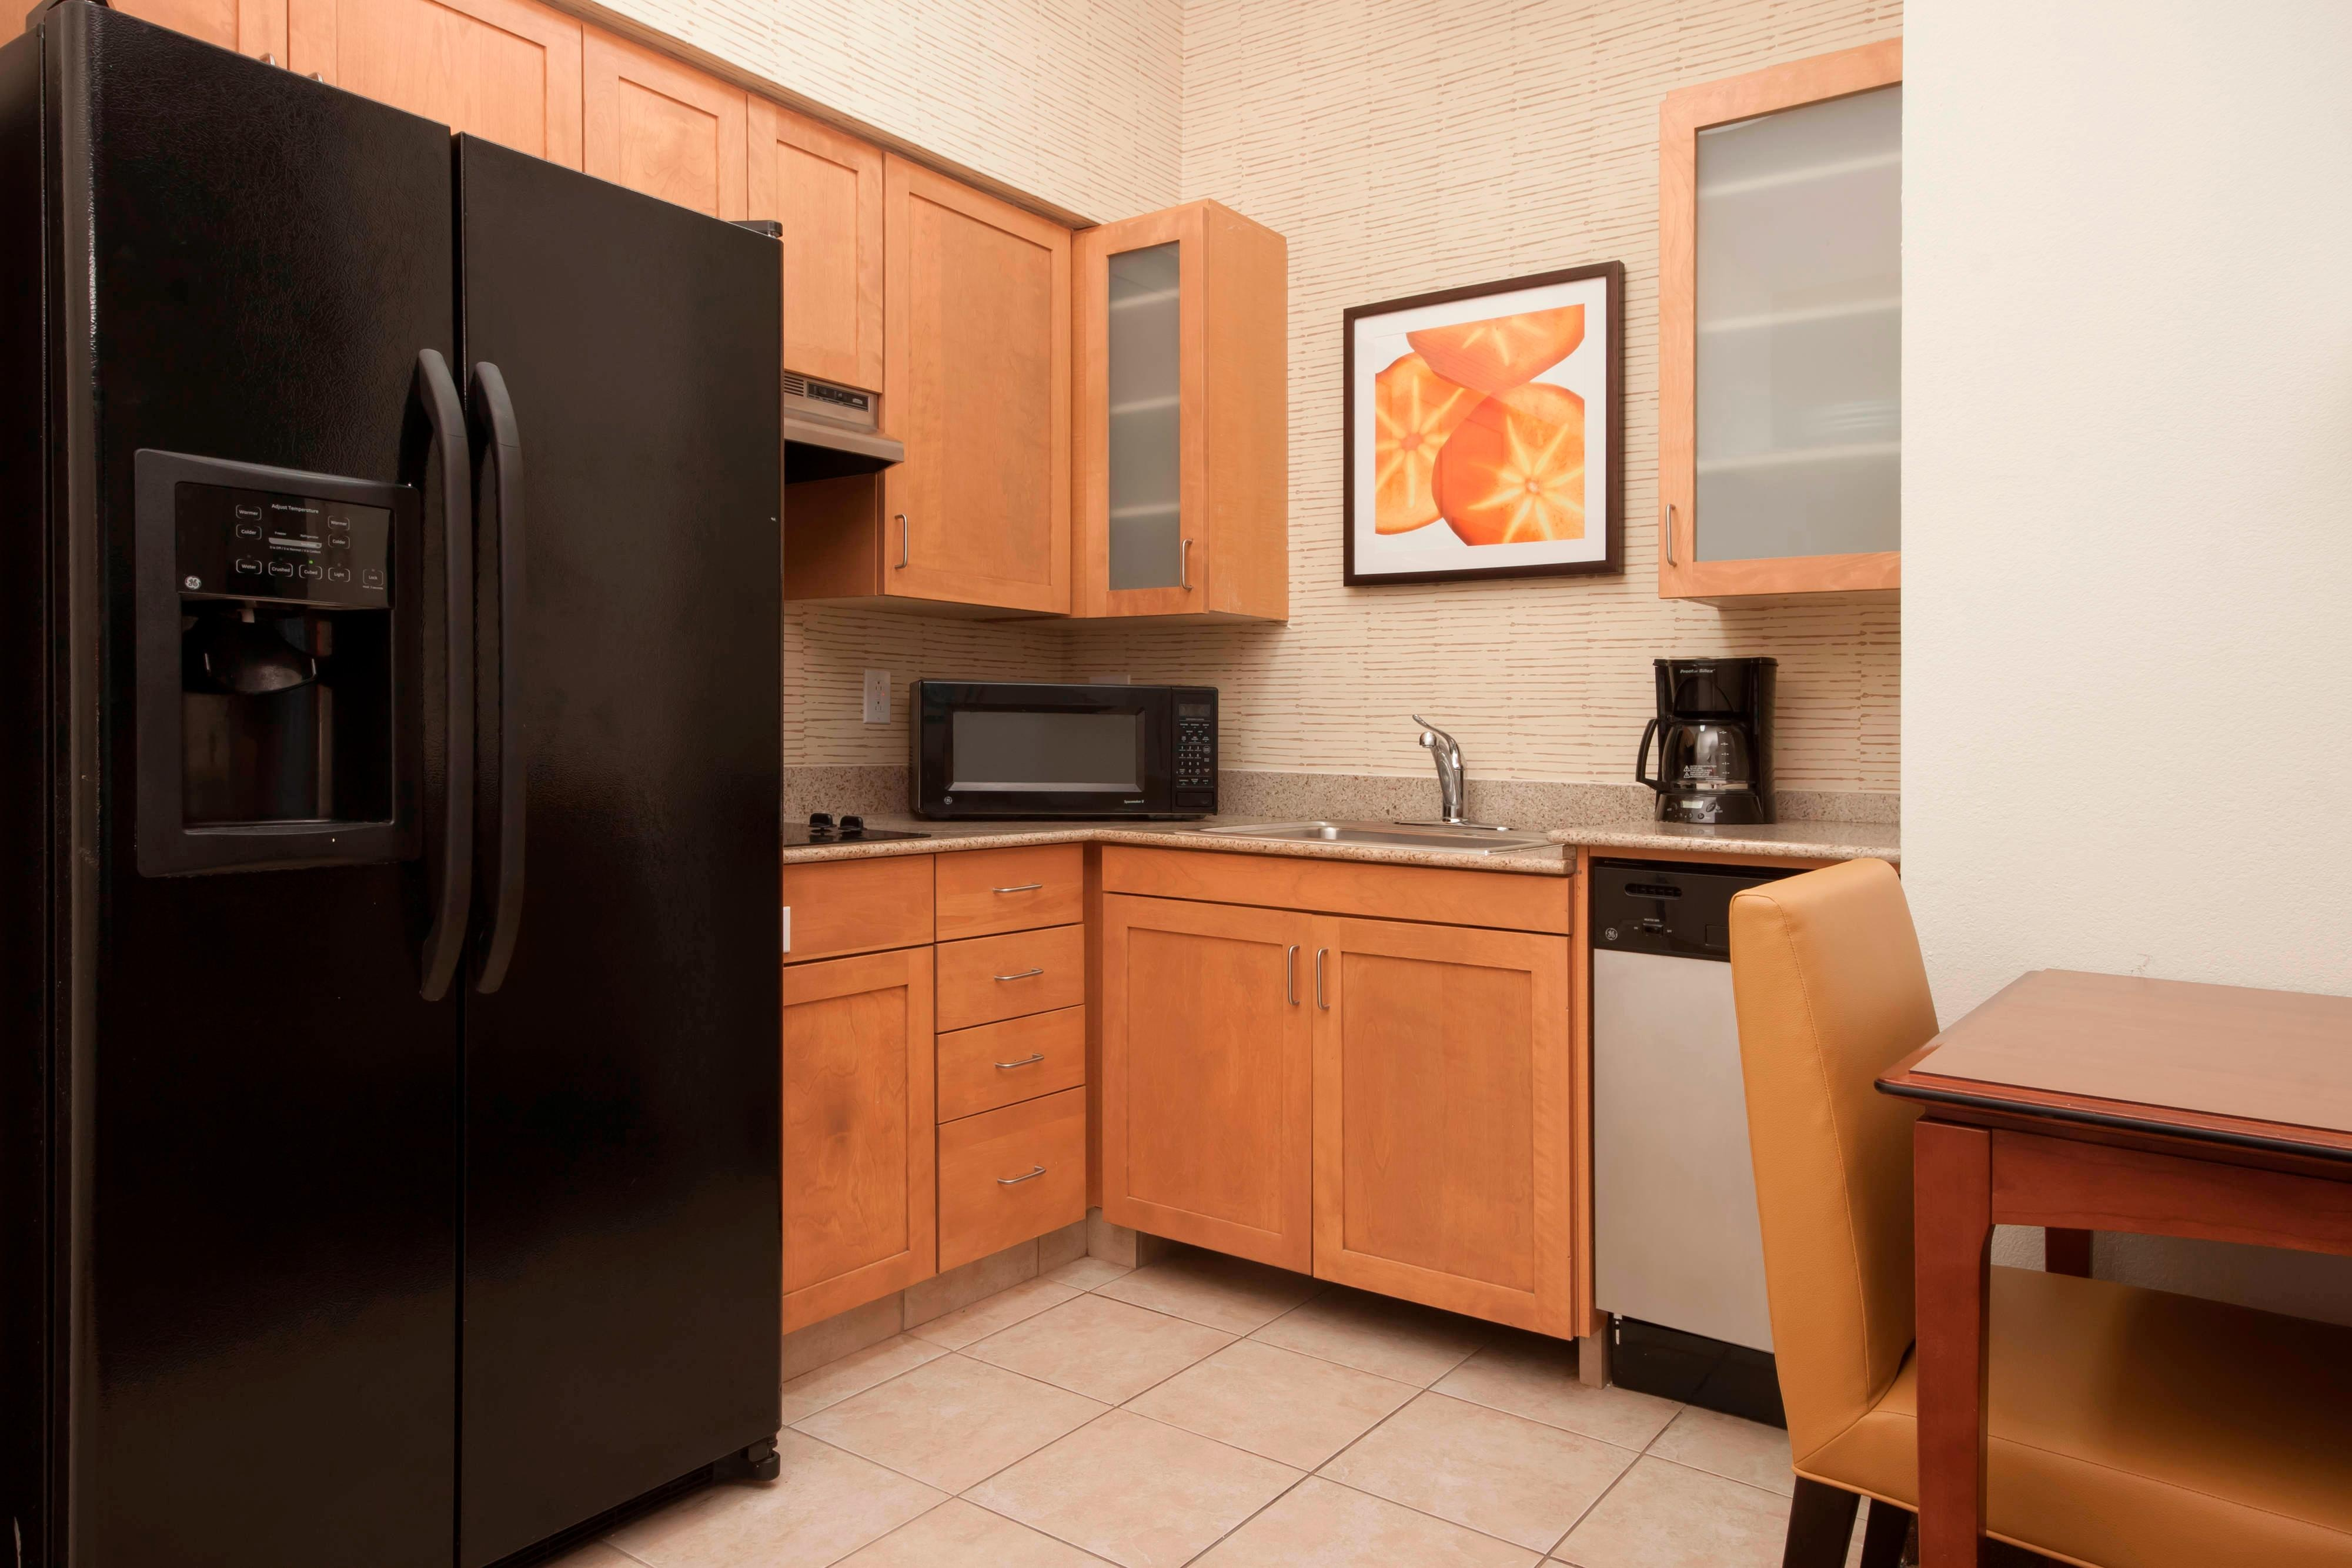 San Antonio Hotel Suite Kitchen